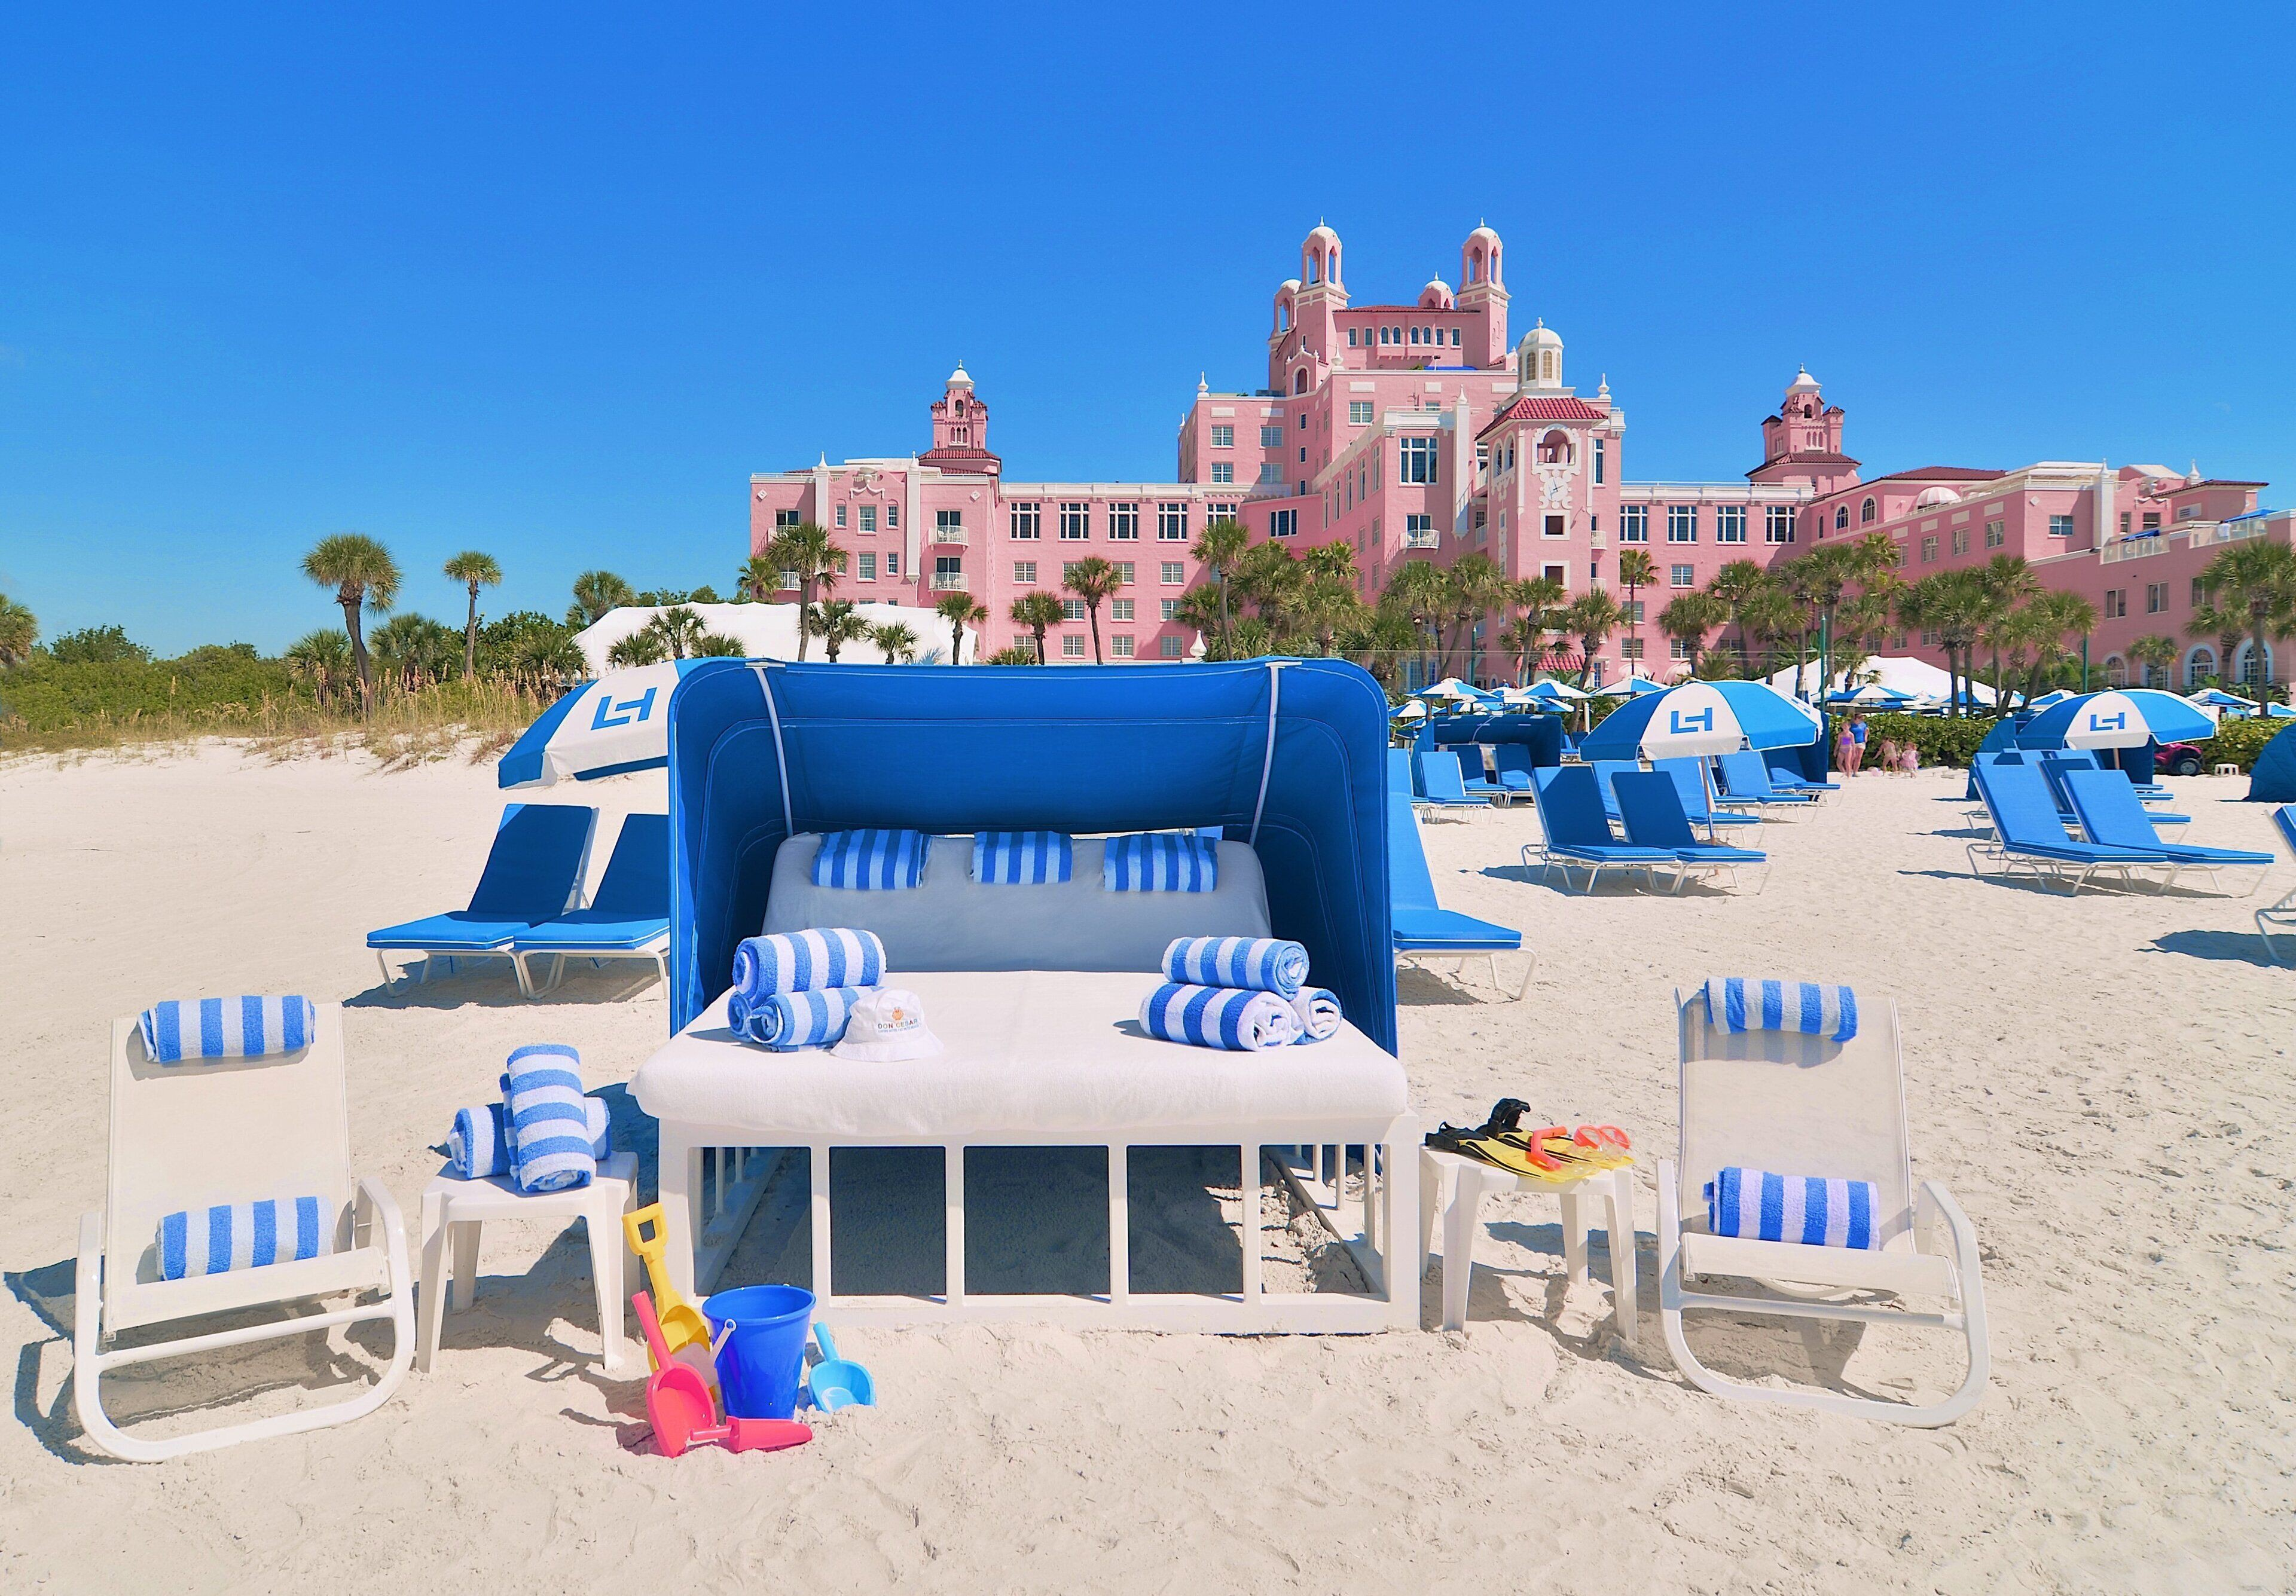 Courtesy of The Don CeSar / Expedia